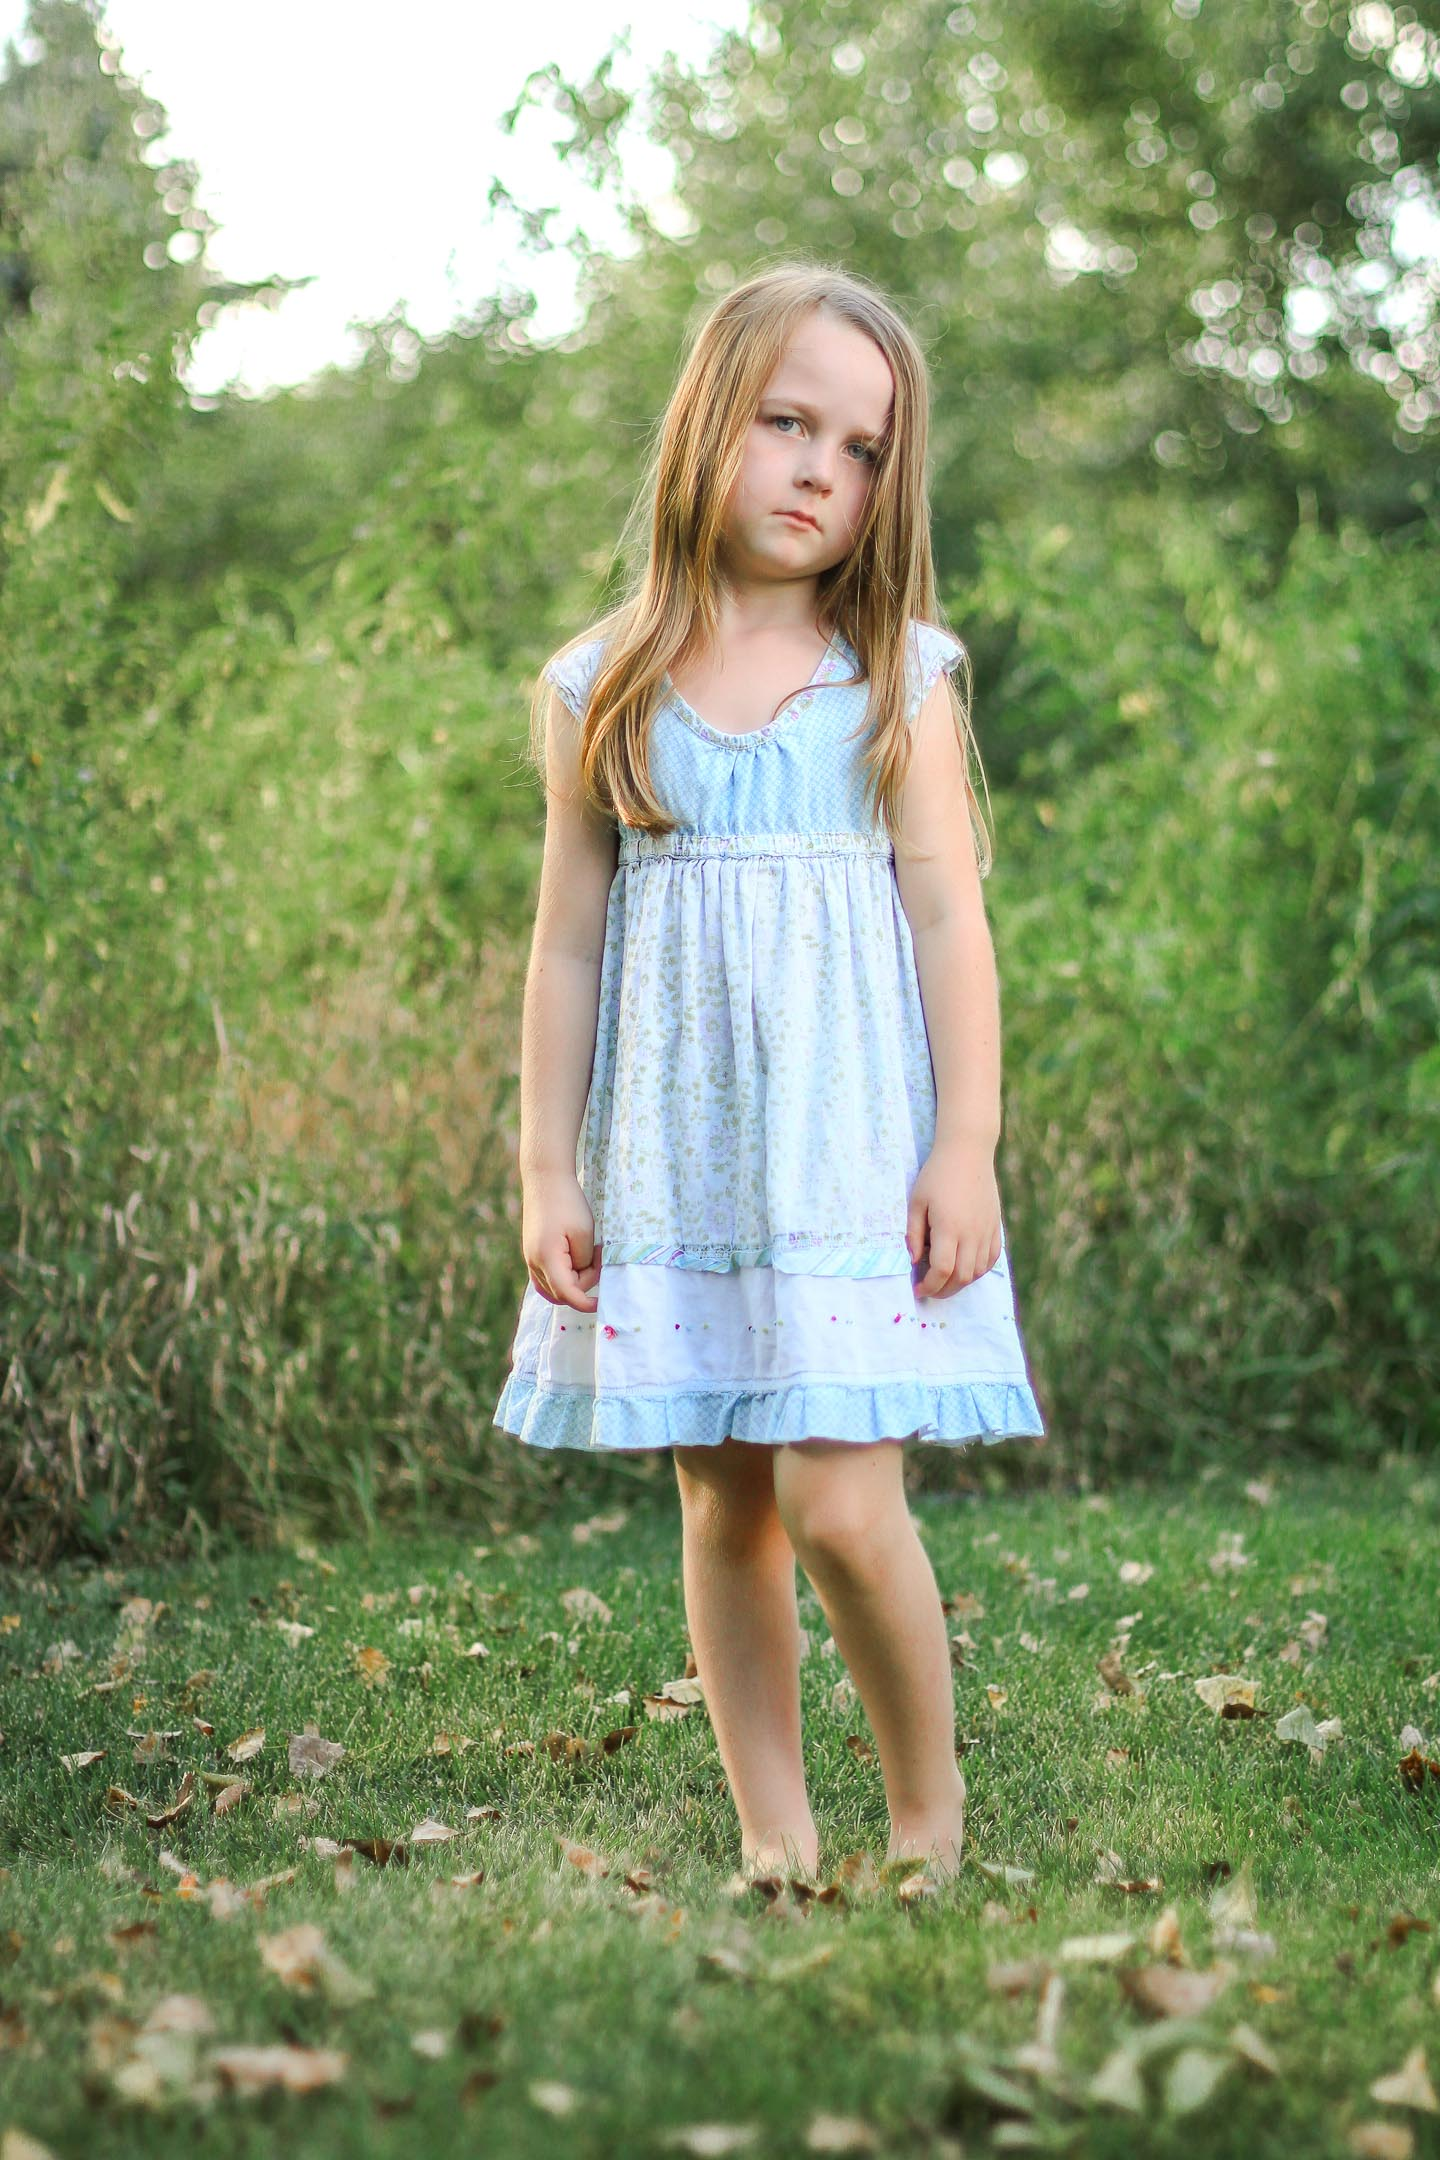 Little girl with a sad expression.